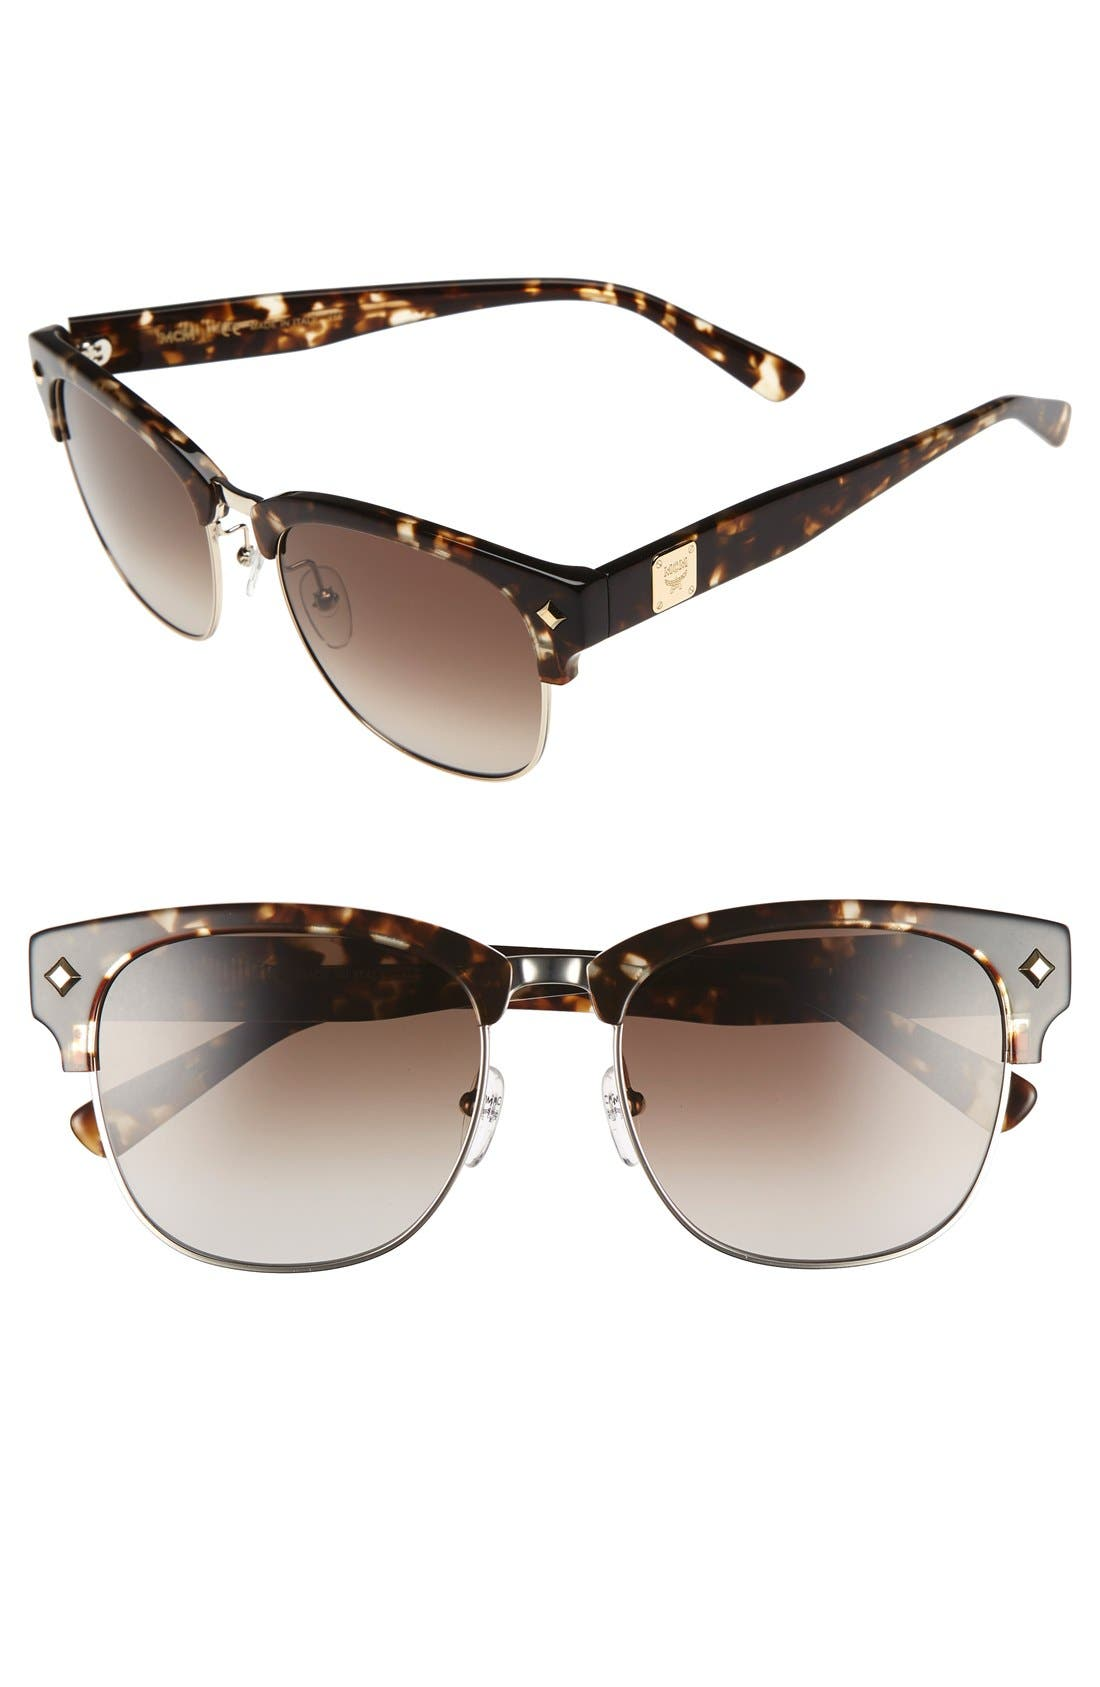 MCM 55mm Retro Sunglasses